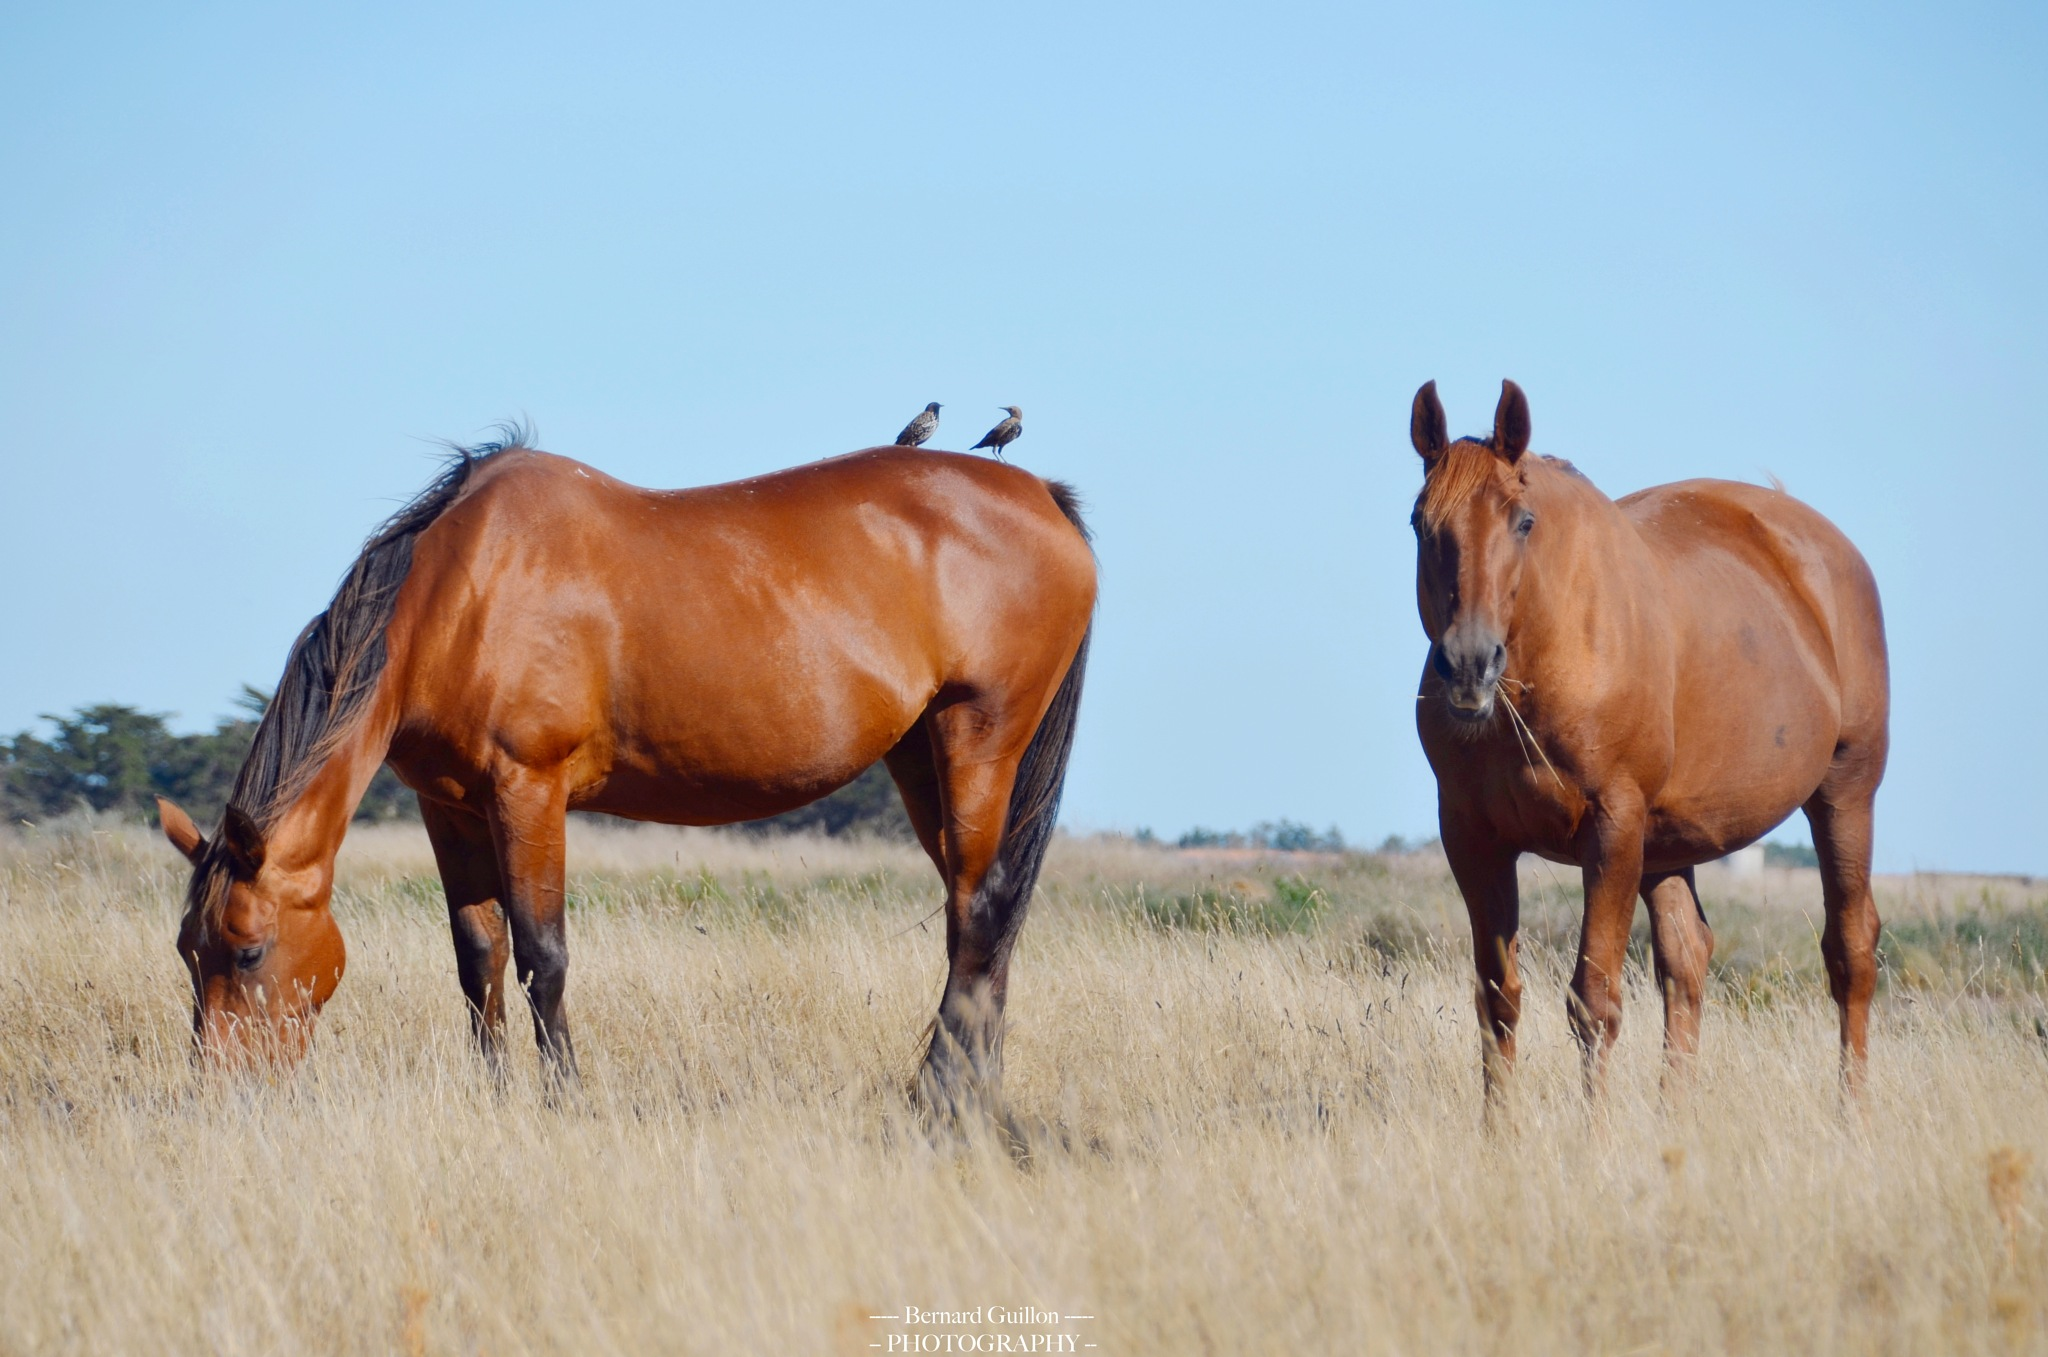 Horses and birds together by Bernard Guillon